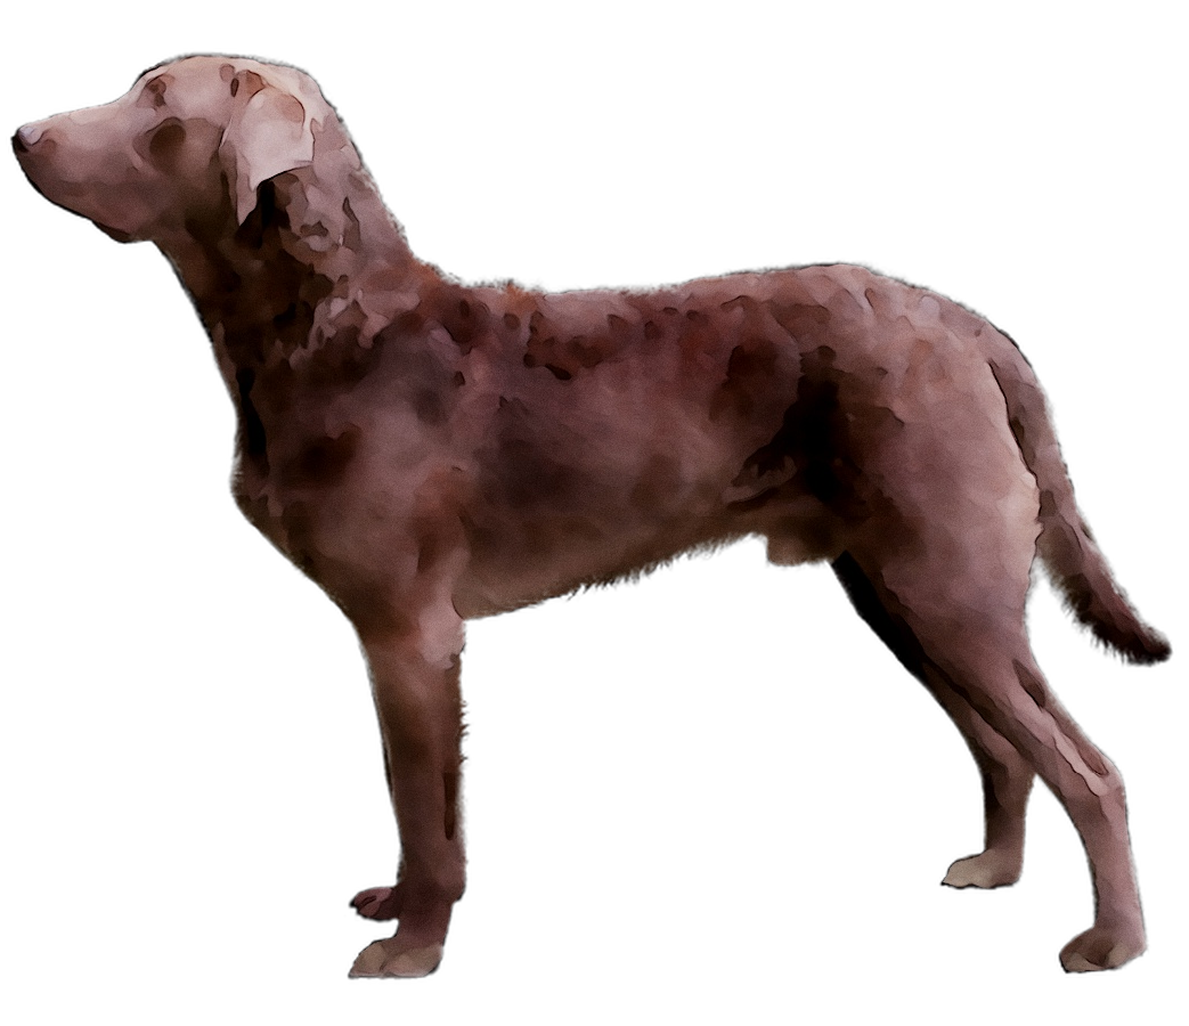 Pin by freepngclipart on Images Dog breeds, Retriever